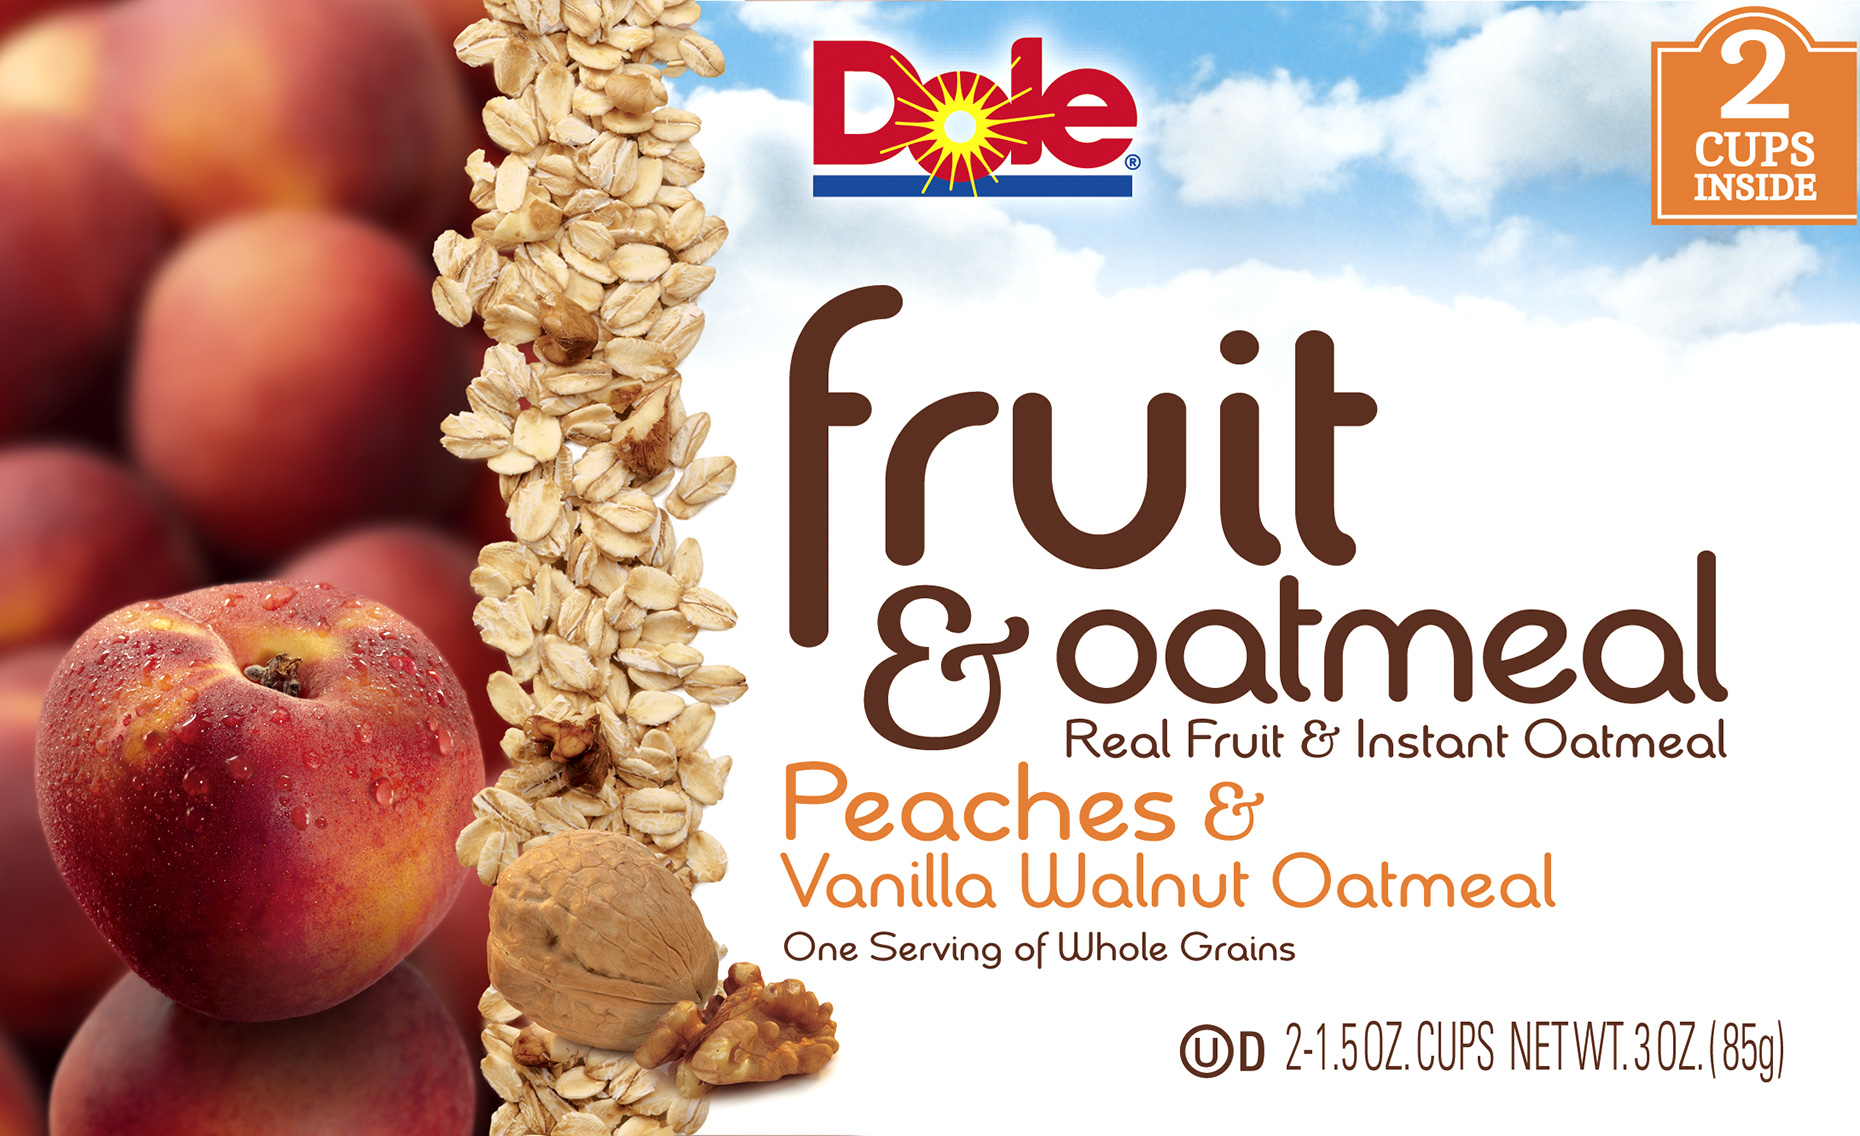 5498-Dole-Quaker-Photomask---Peach--whole